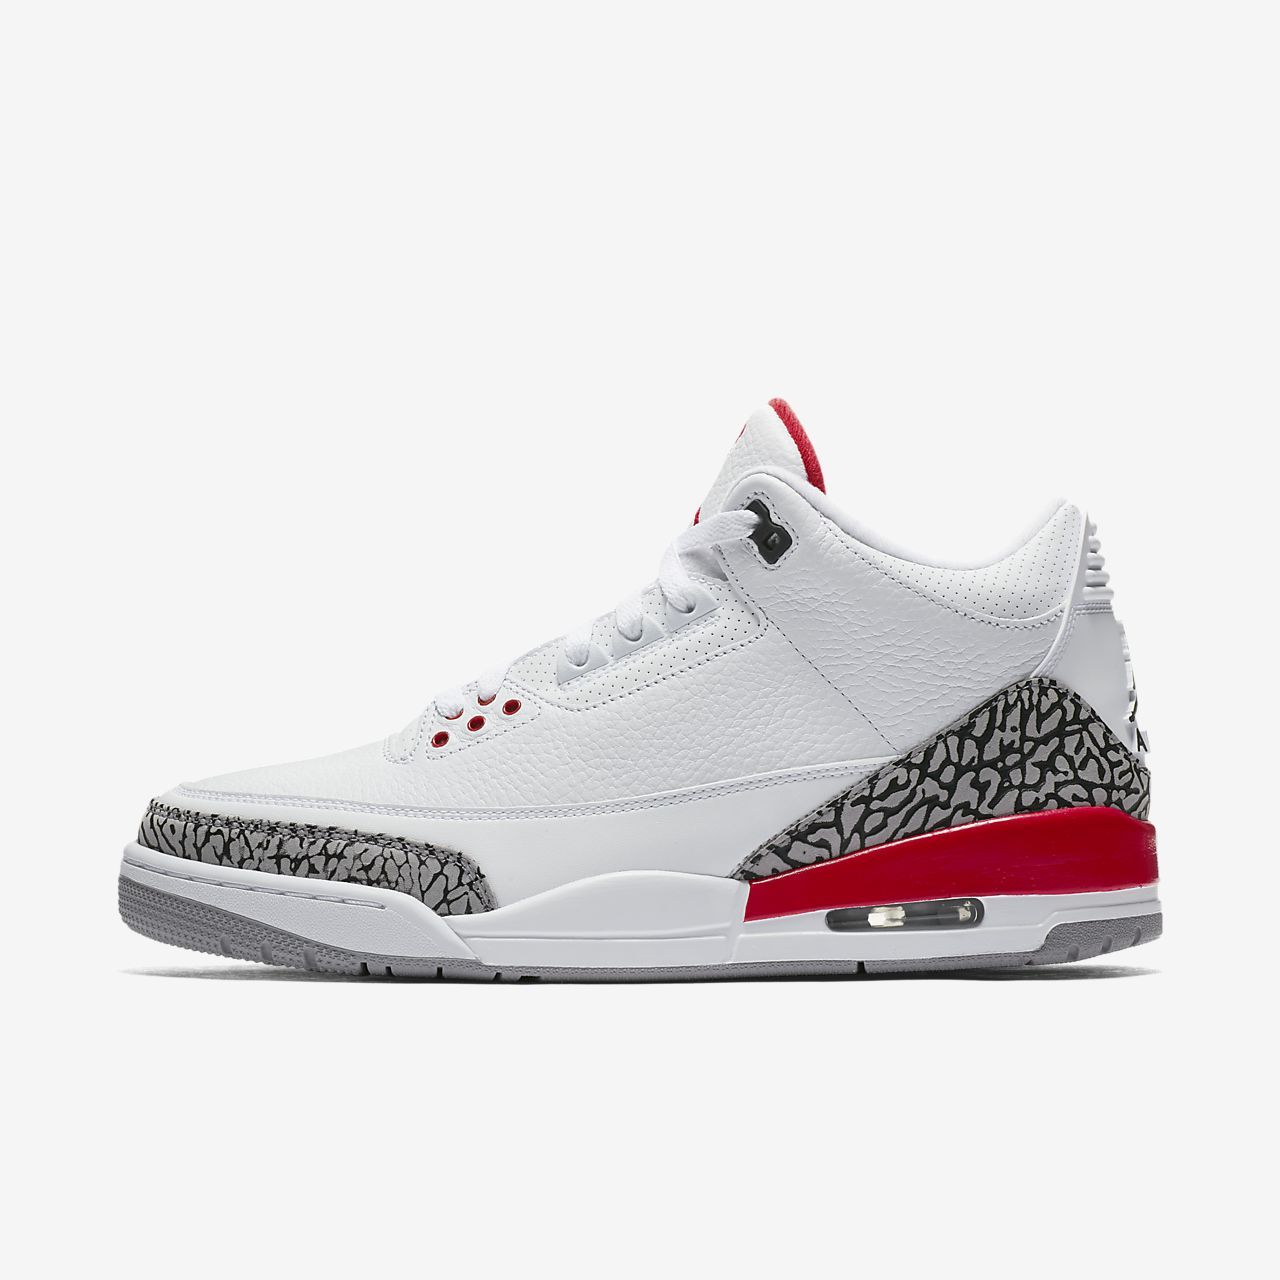 check out 20dae a8da3 Air Jordan 3 Retro Men's Shoe